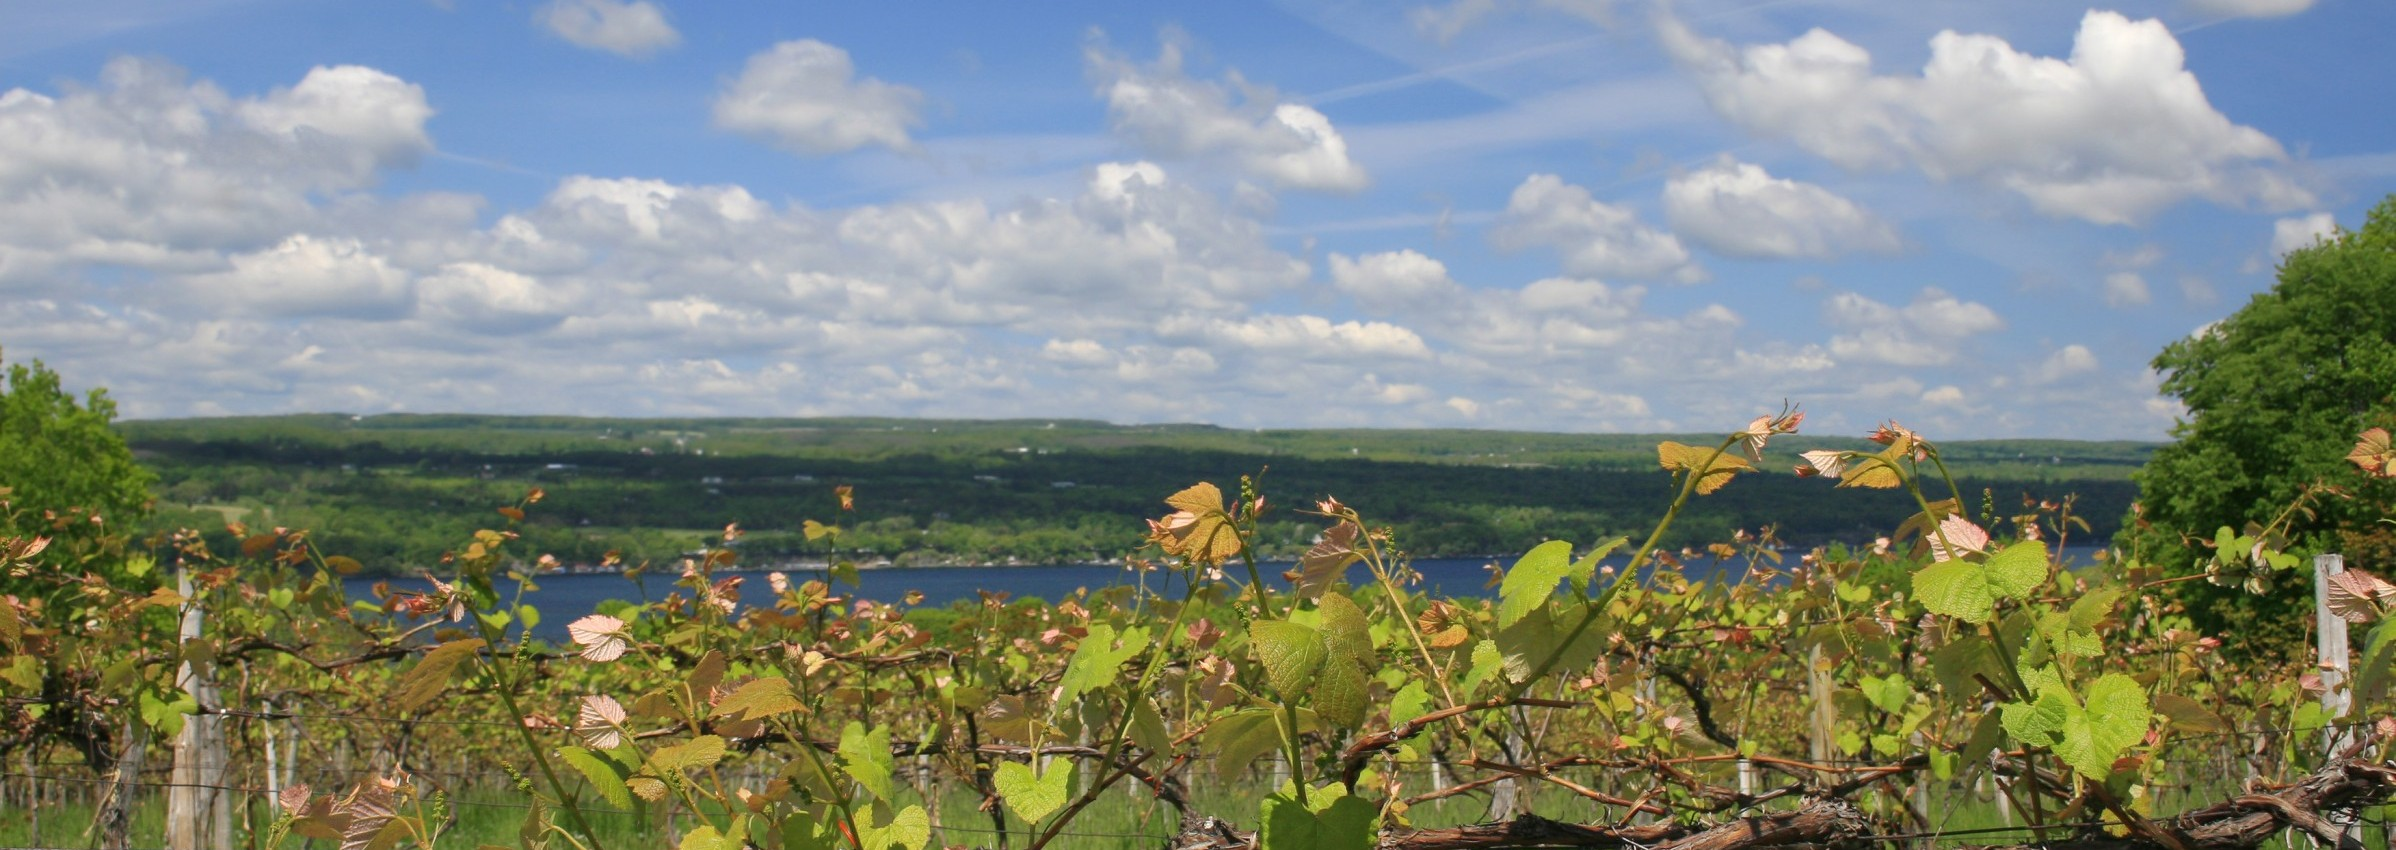 finger_lakes_vineyard-e1440788677644